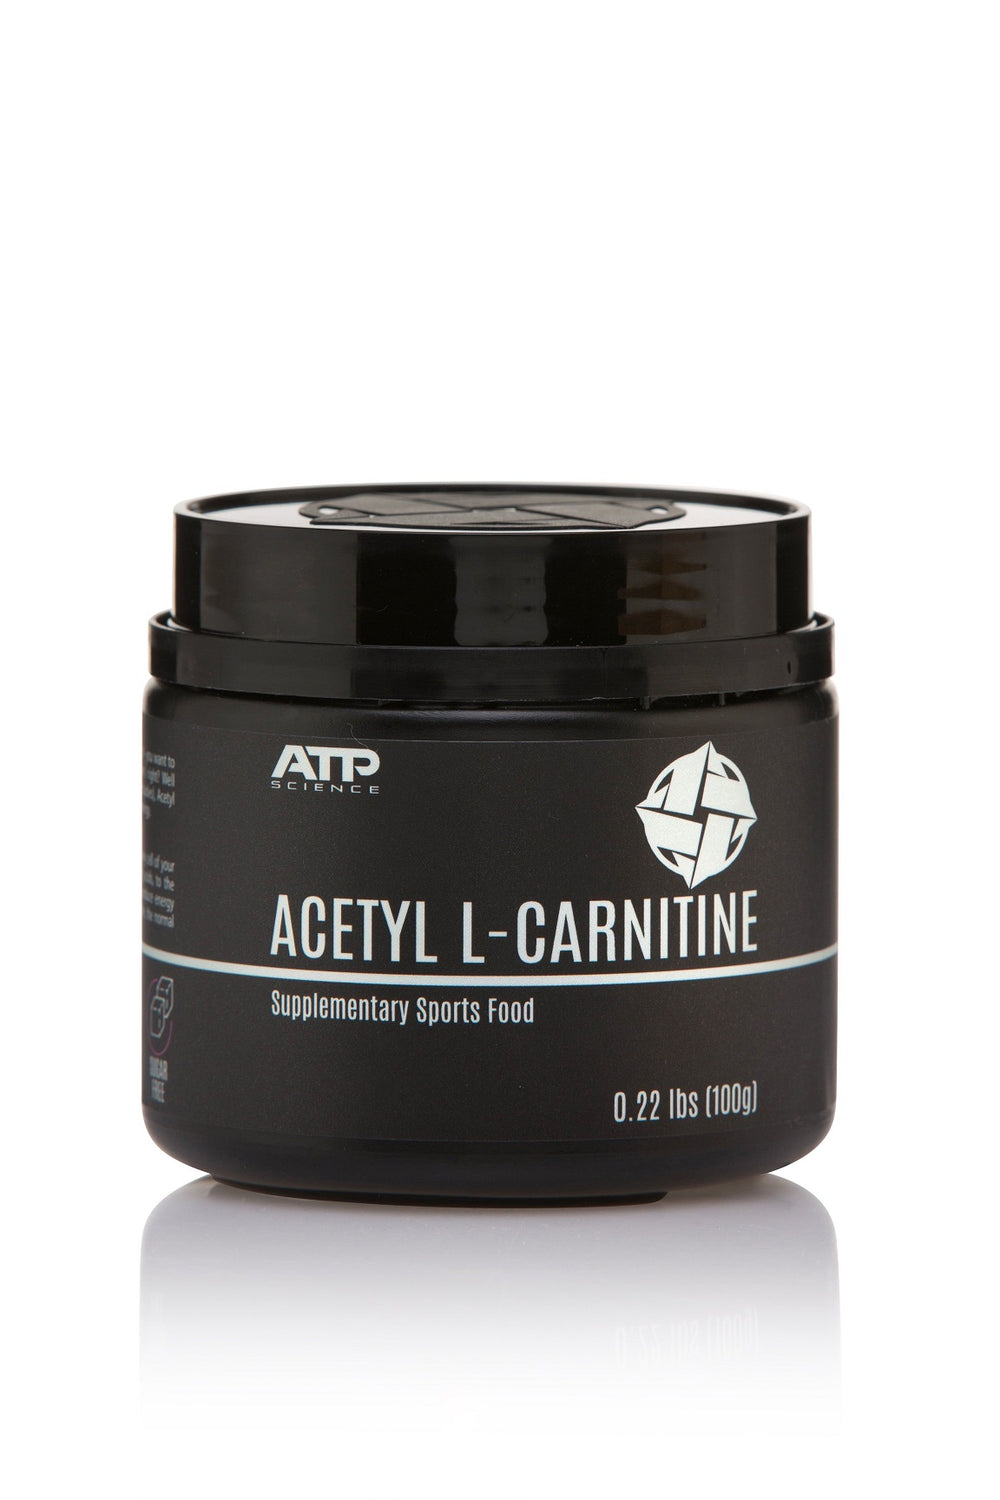 ATP Acetyl L-Carnitine - Super Nutrition